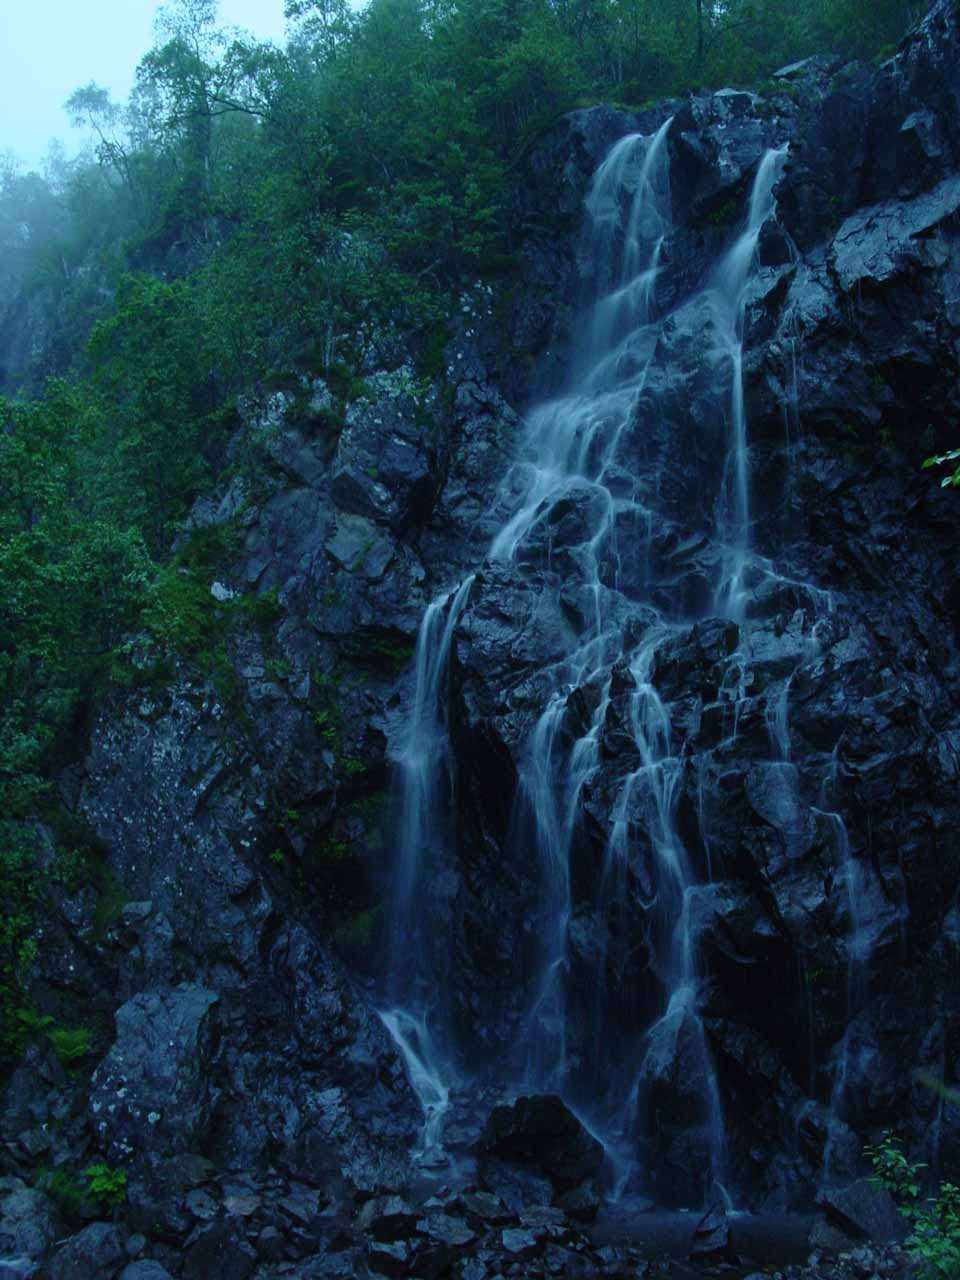 This was the fruit of my failed attempt at finding a more significant waterfall in the Hjorteland area near the moors of Suldal